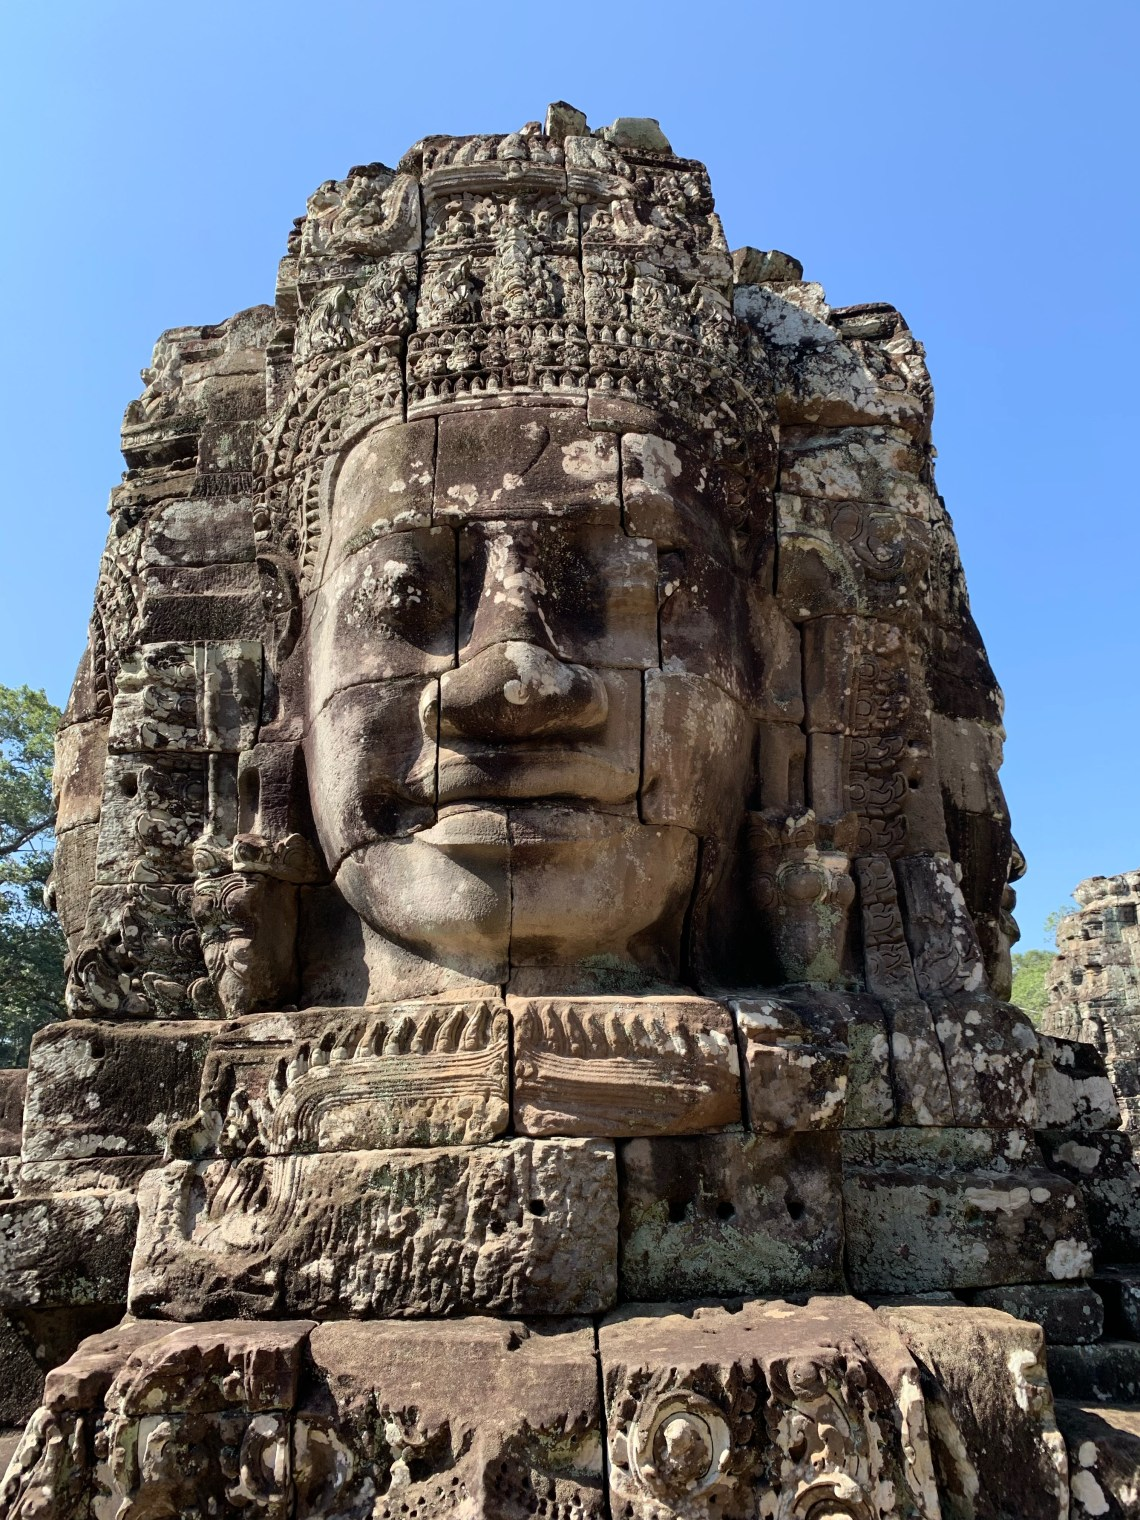 My favourite temple- Bayon temple